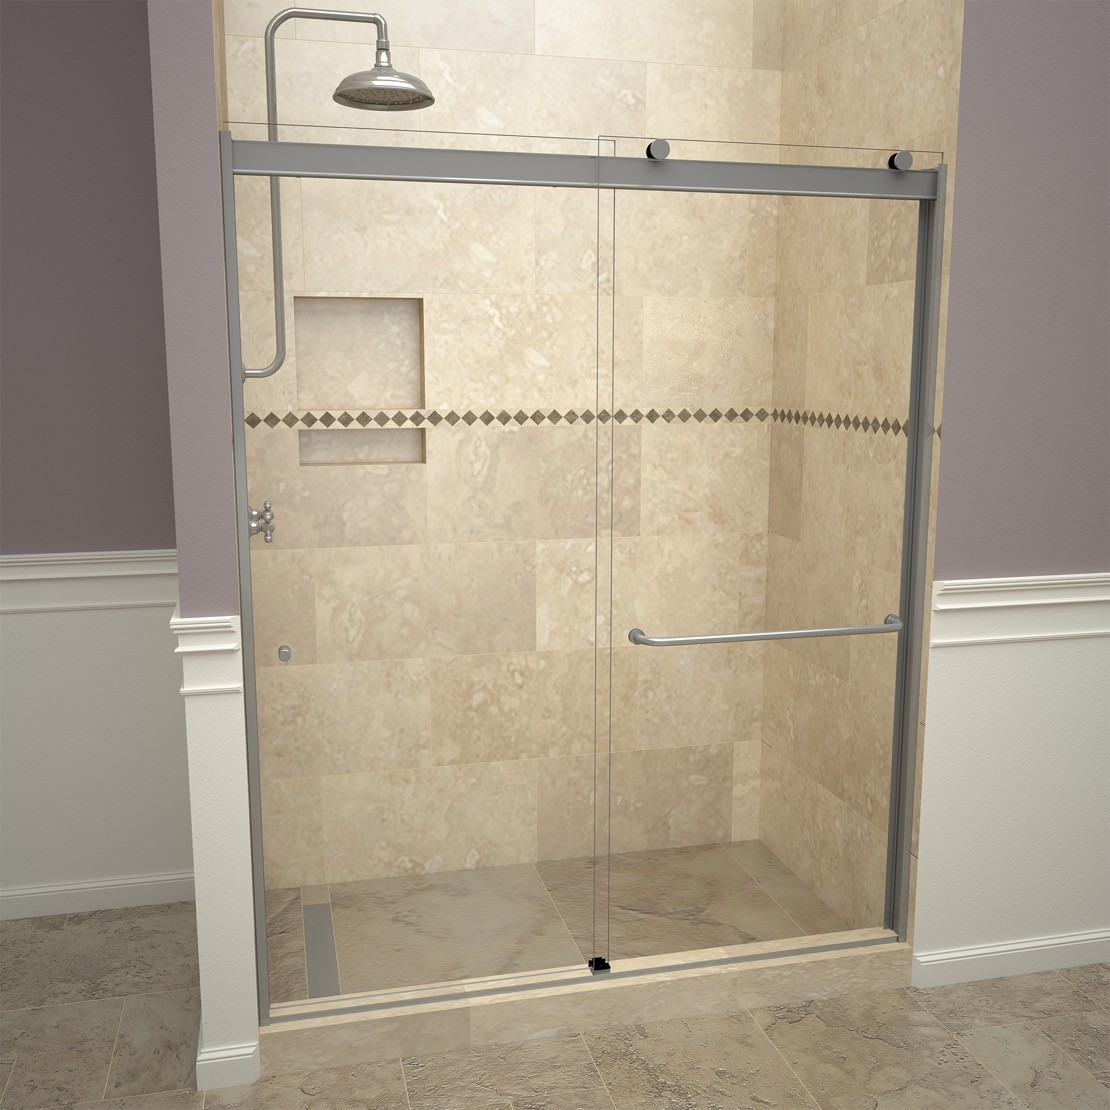 Base N Door Shower Kits Include Pan Door Niche And